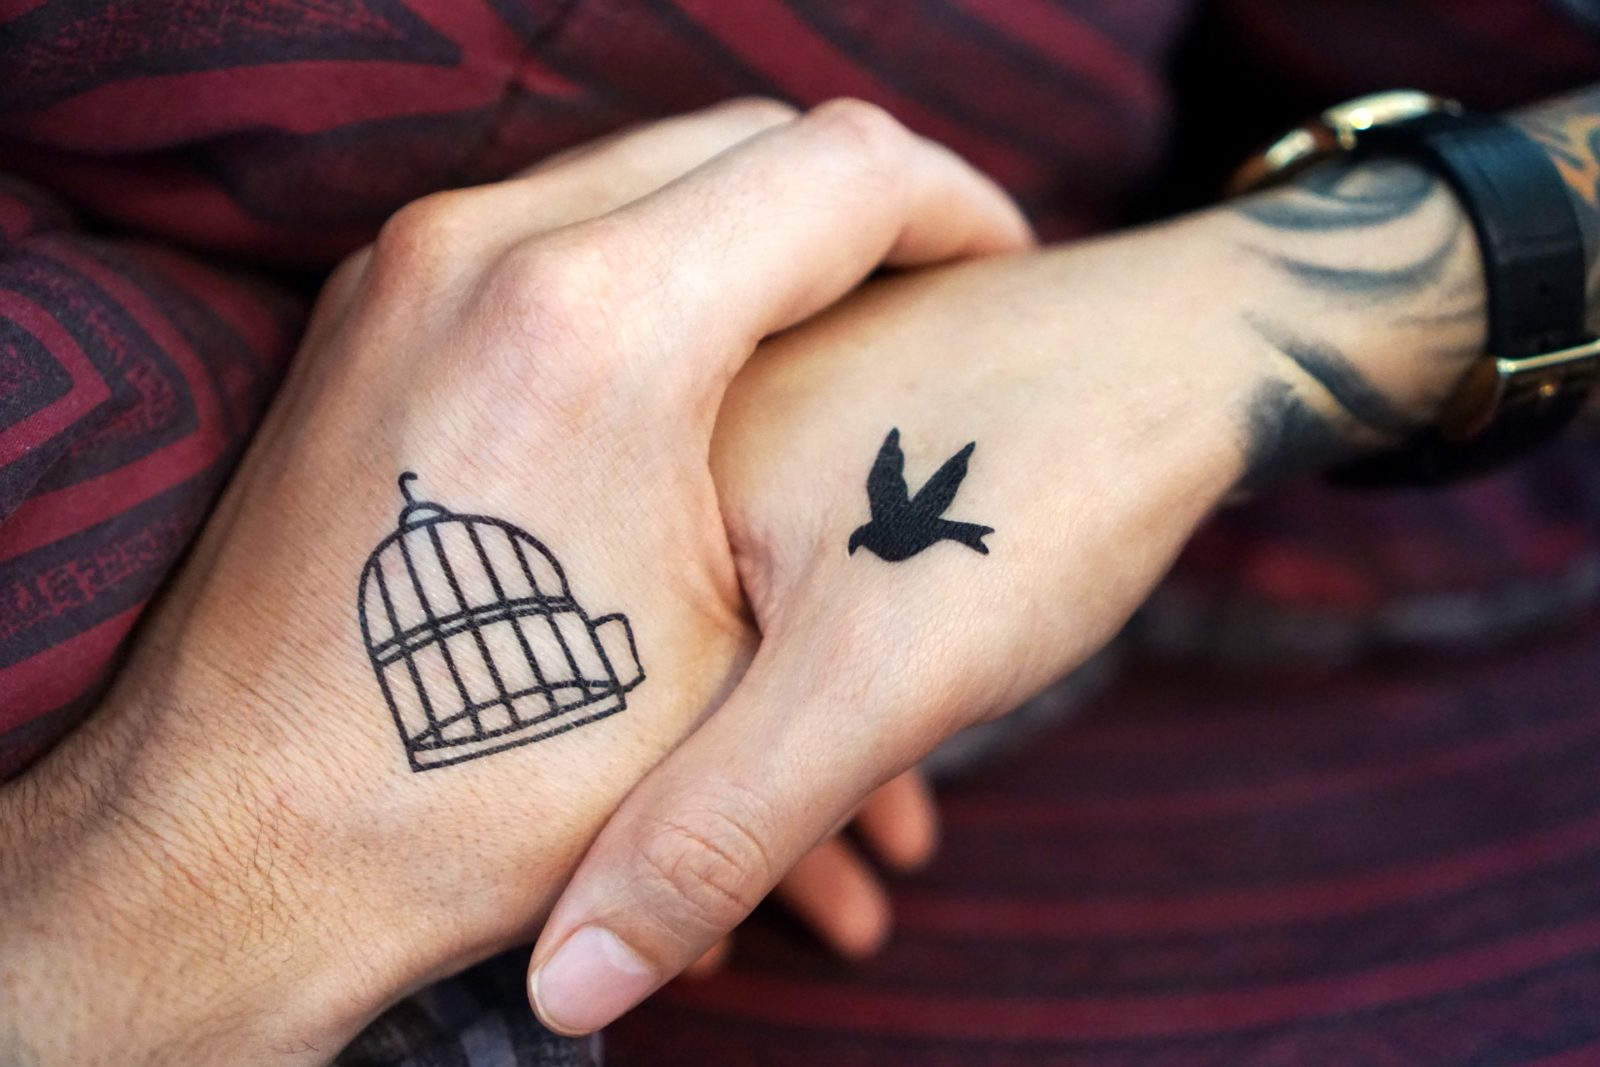 How To Get Rid Of Tattoos